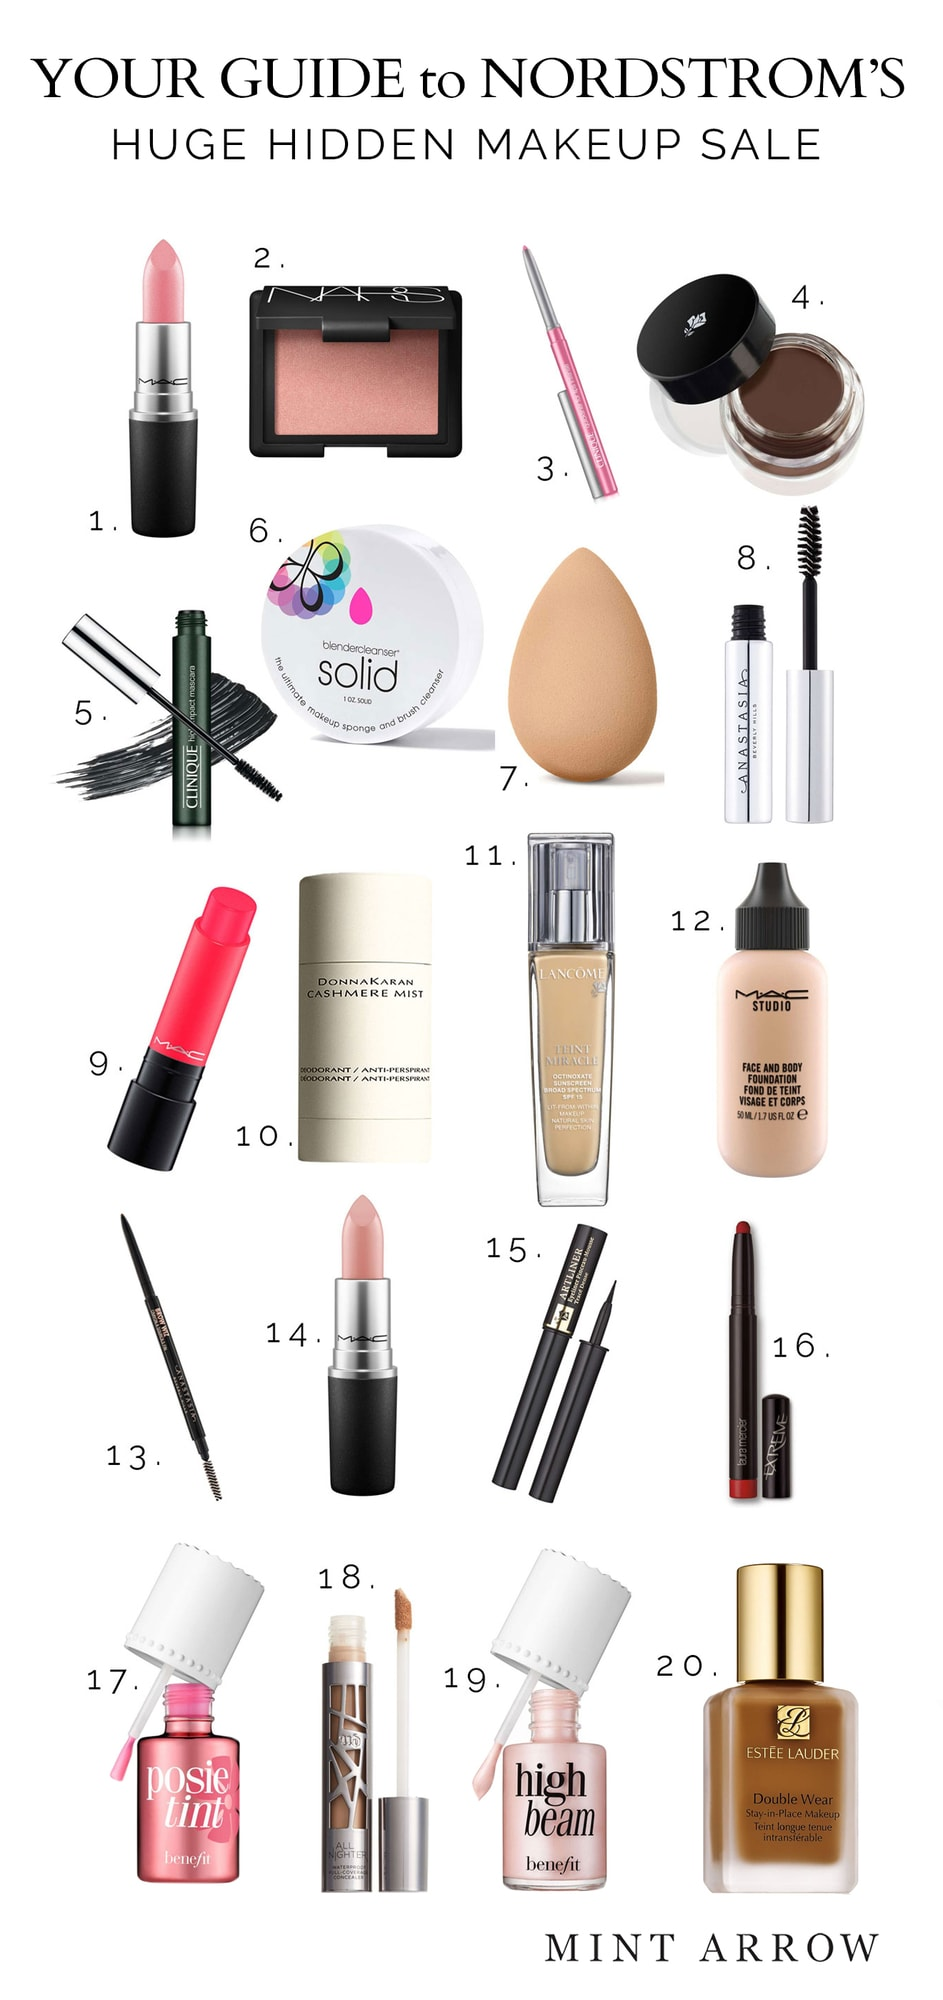 Nordstrom's HUGE hidden makeup sale